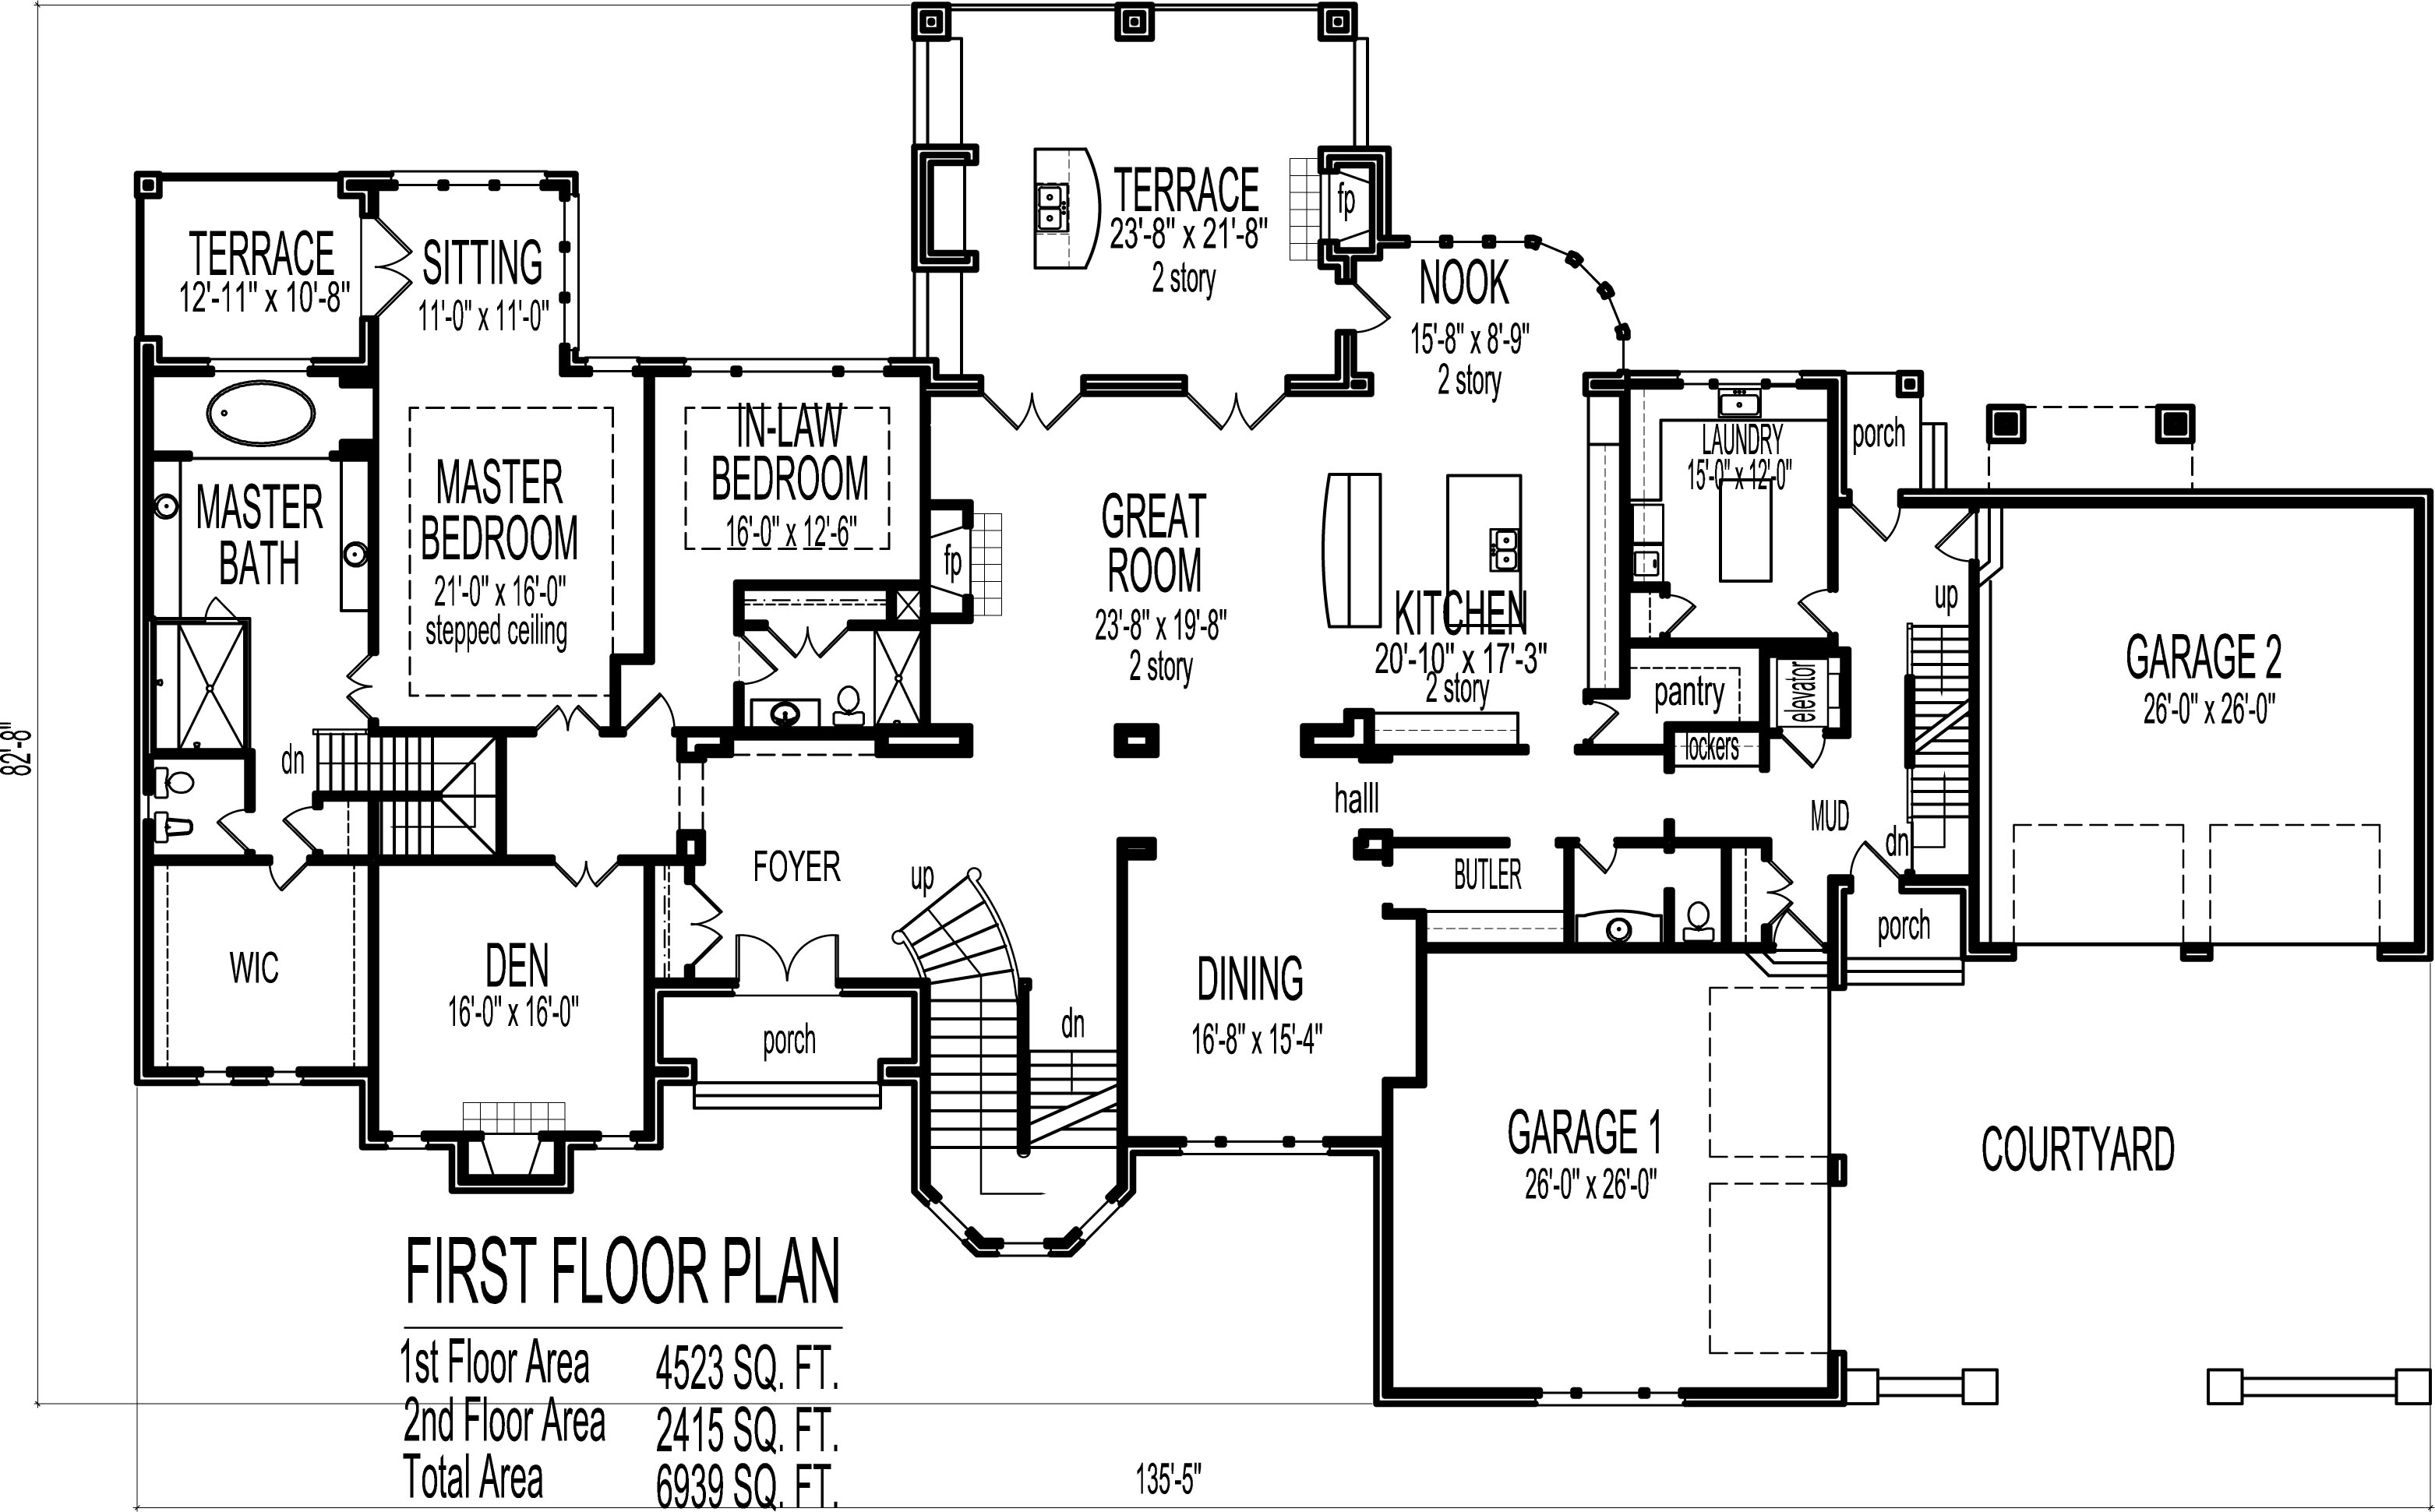 large mansion floor plans house floor plans blueprints 2 story 5 bedroom large - Mansion House Plans